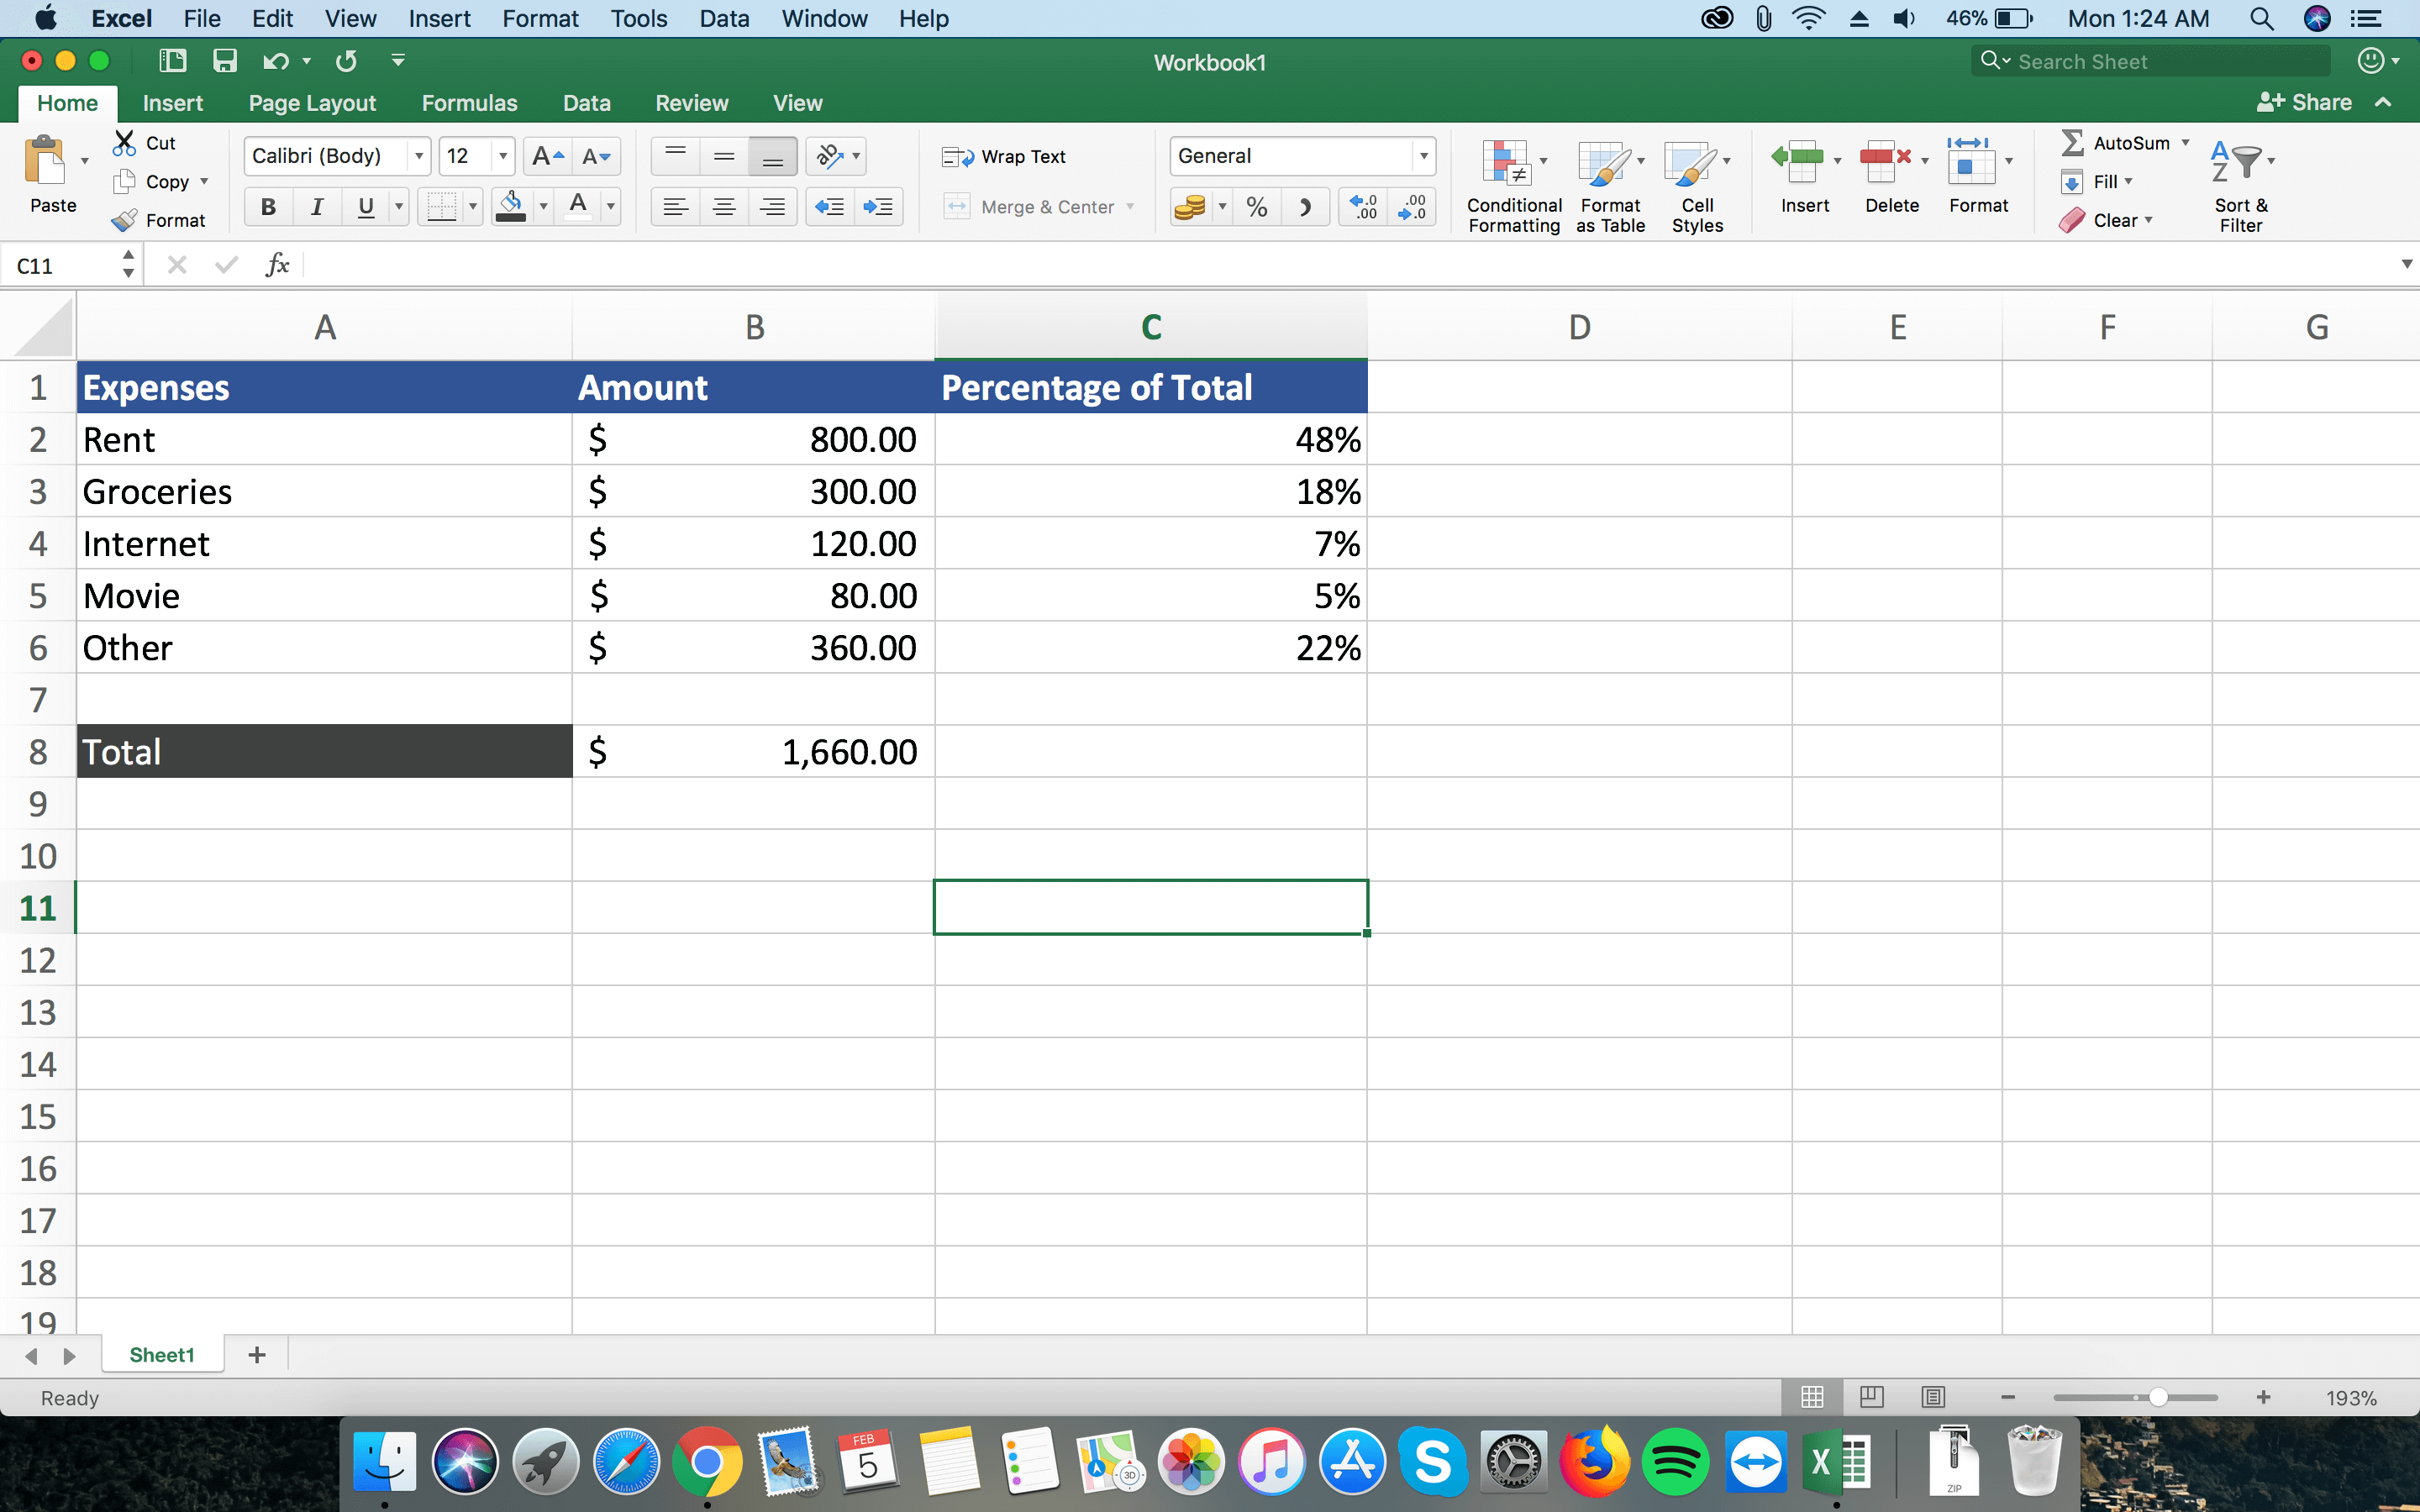 Formula for Percentage of Total in Excel